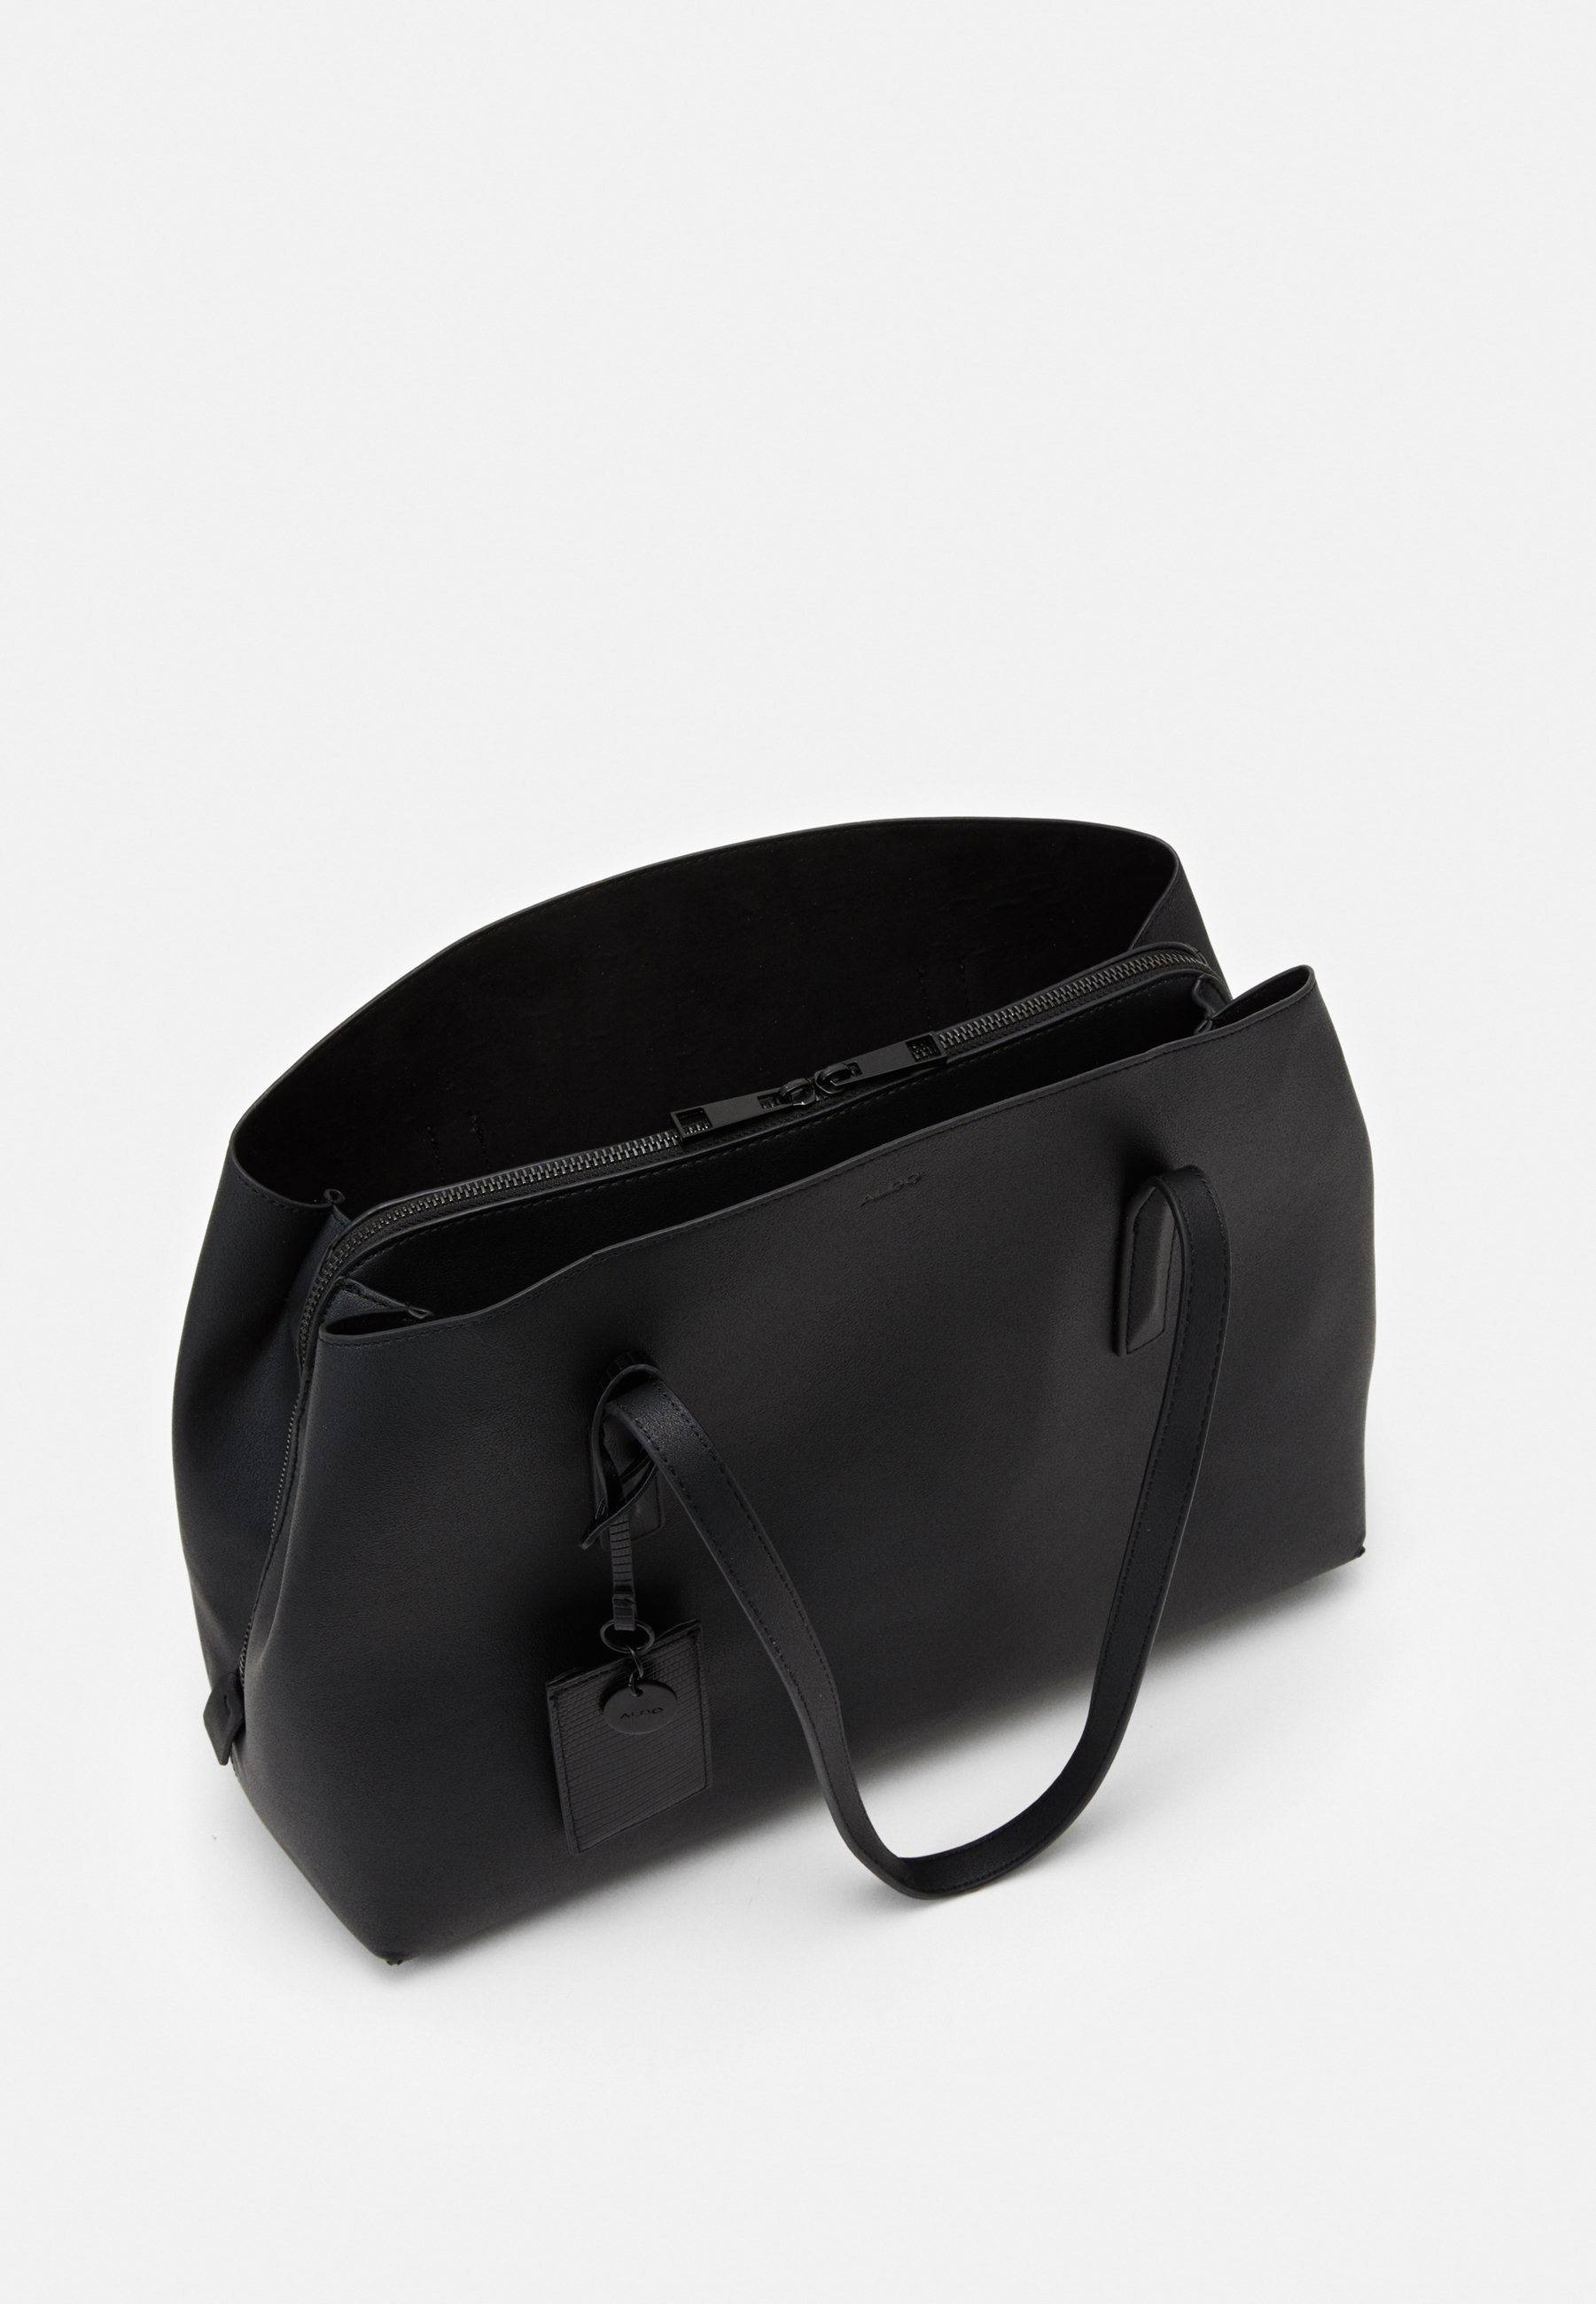 Aldo Ramada - Shopping Bag Jet Black/schwarz